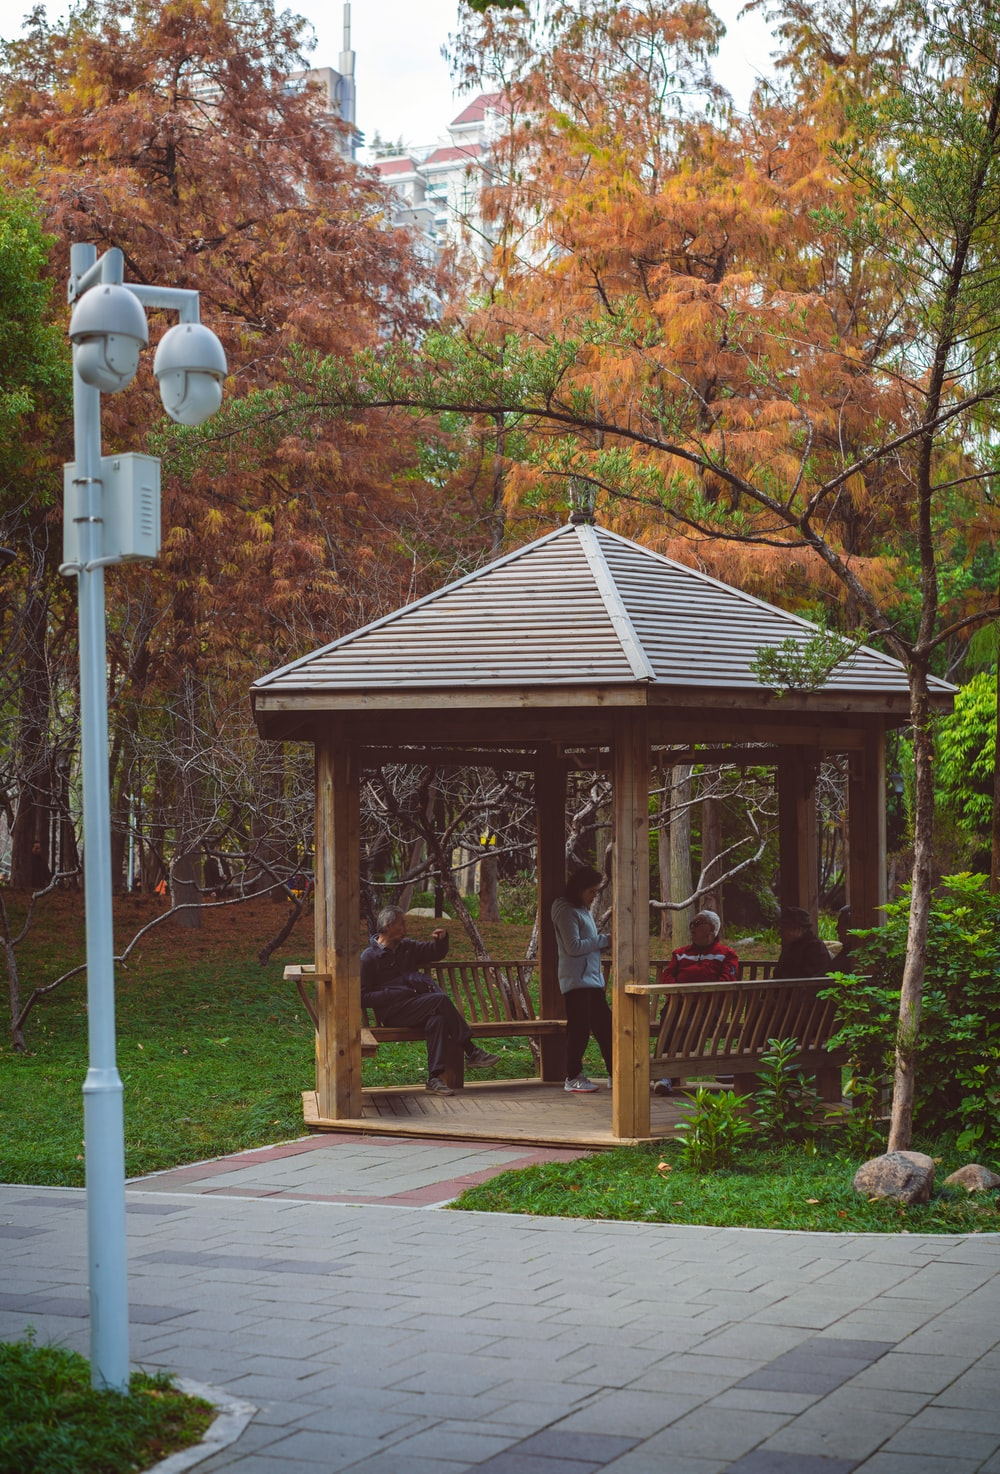 brown wooden gazebo near trees during daytime